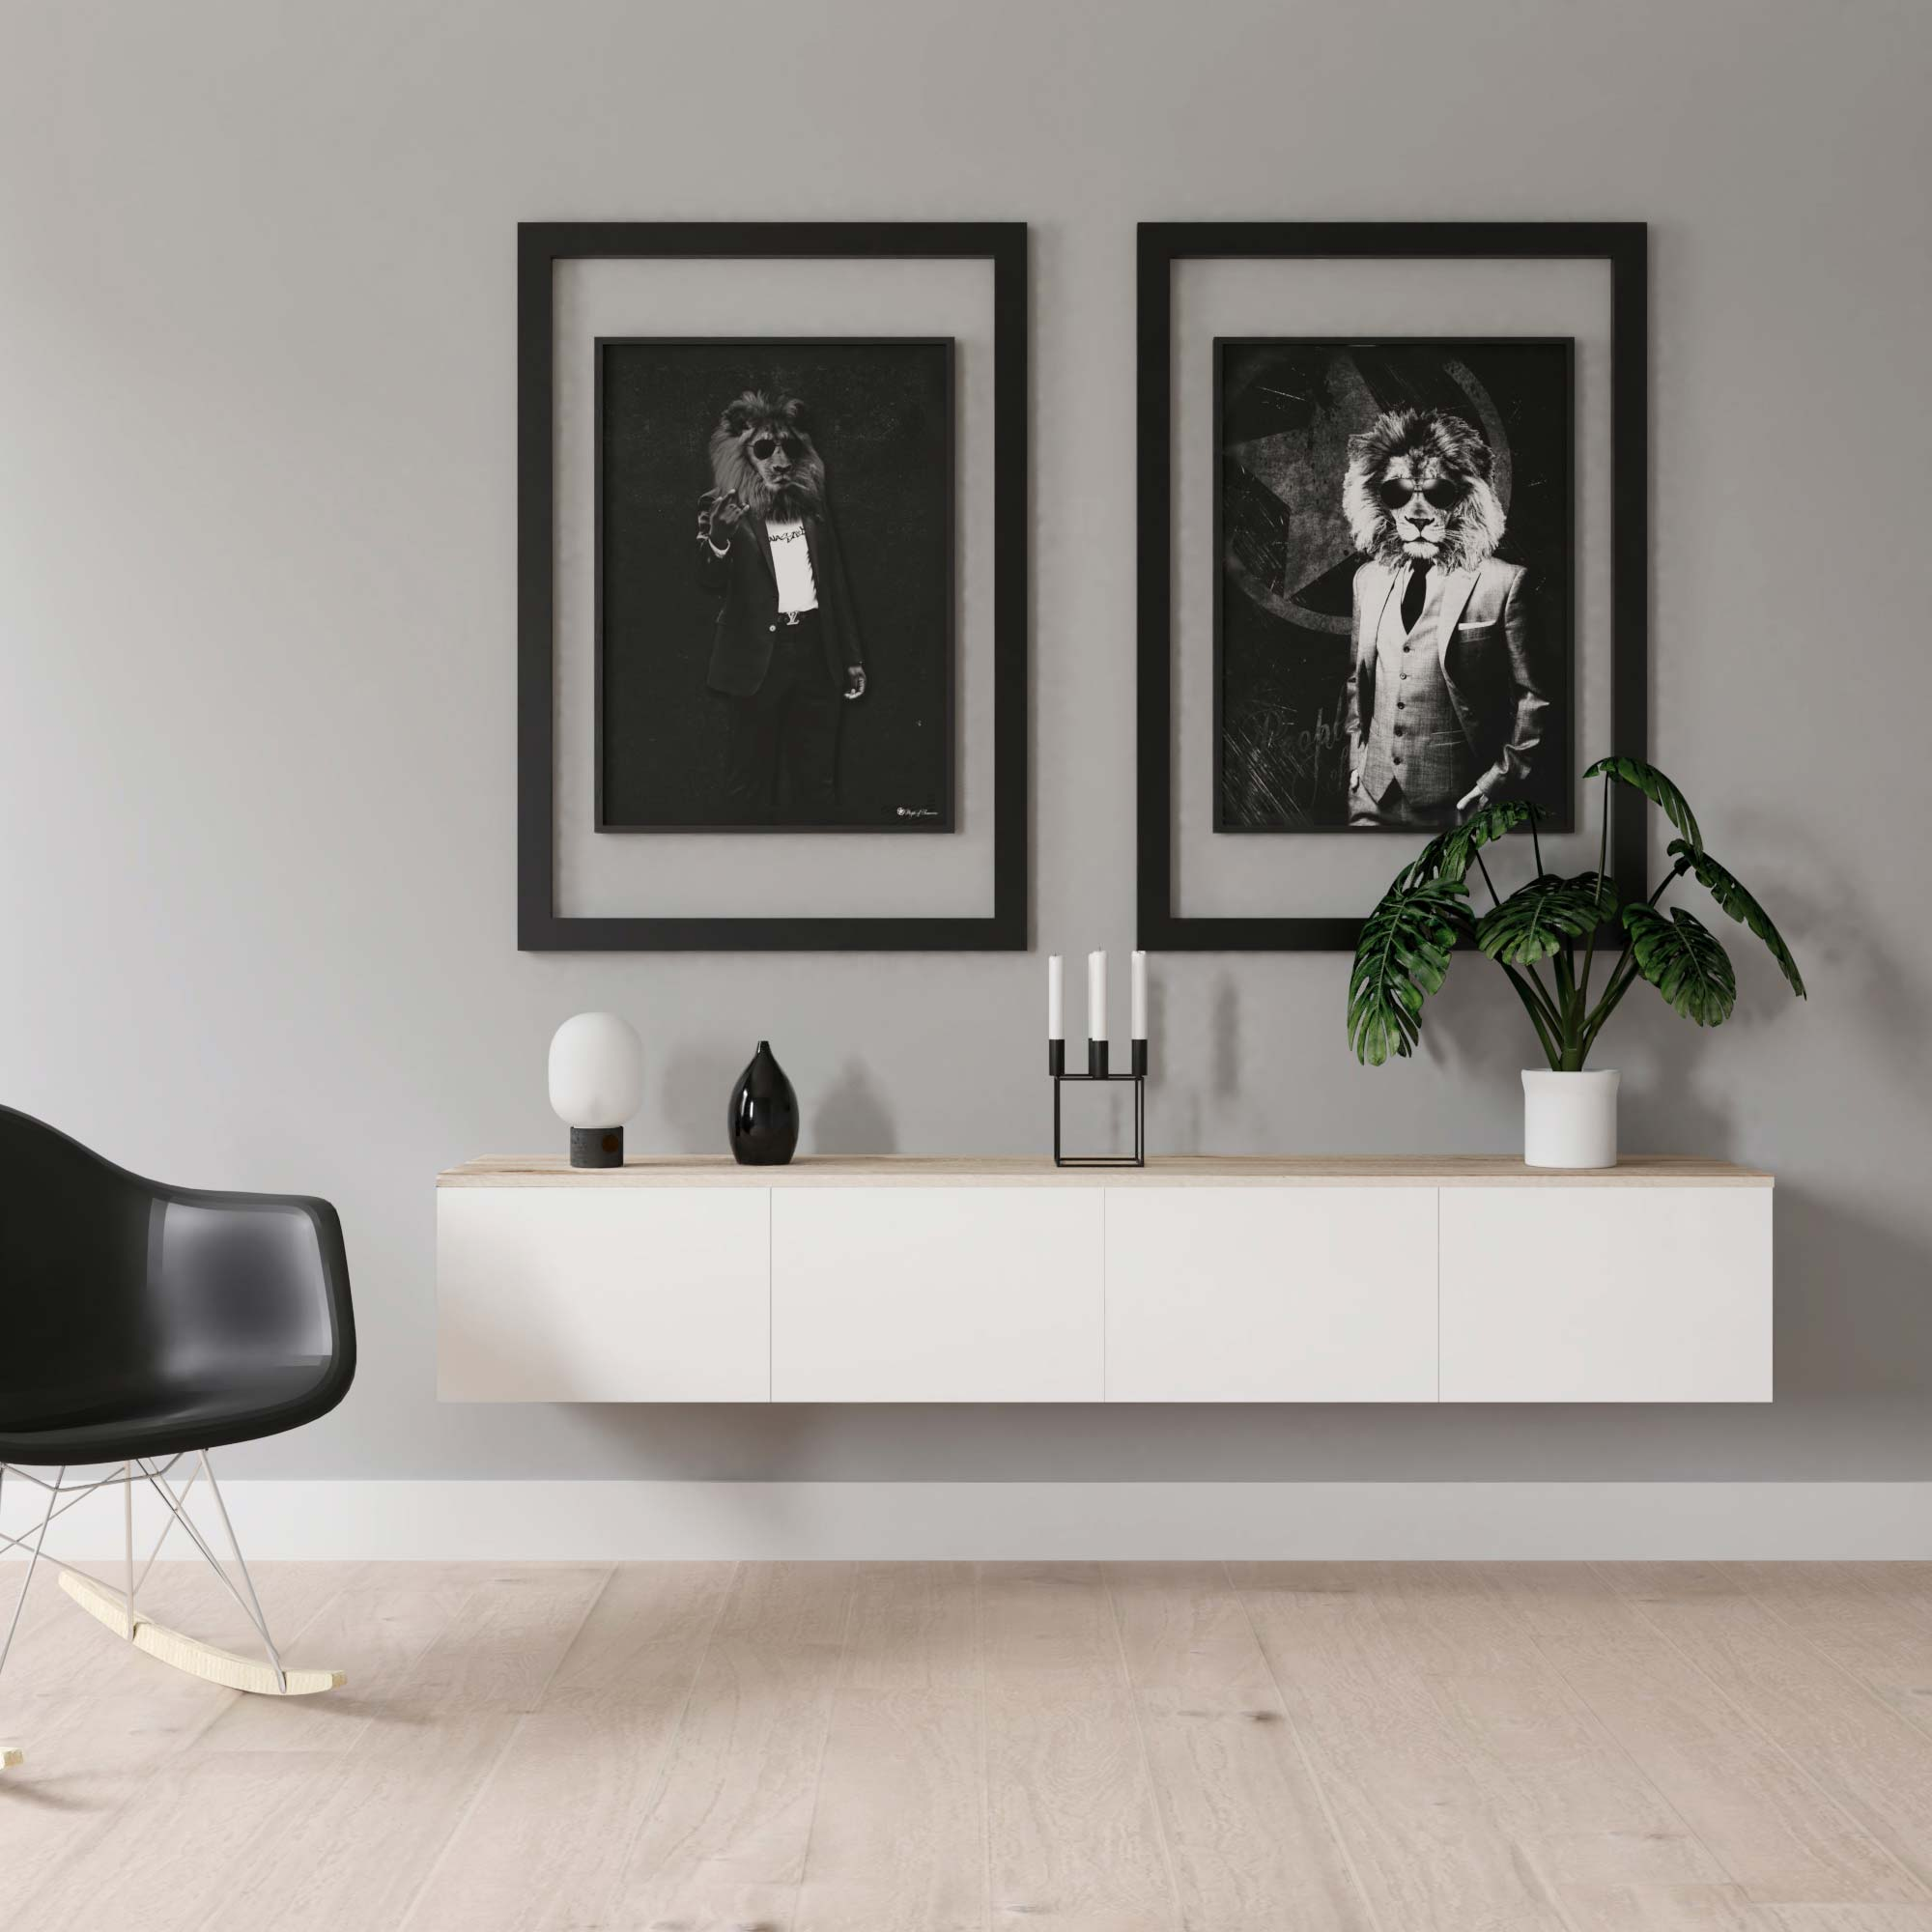 10 unique gallery walls |The Blog | People of Tomorrow